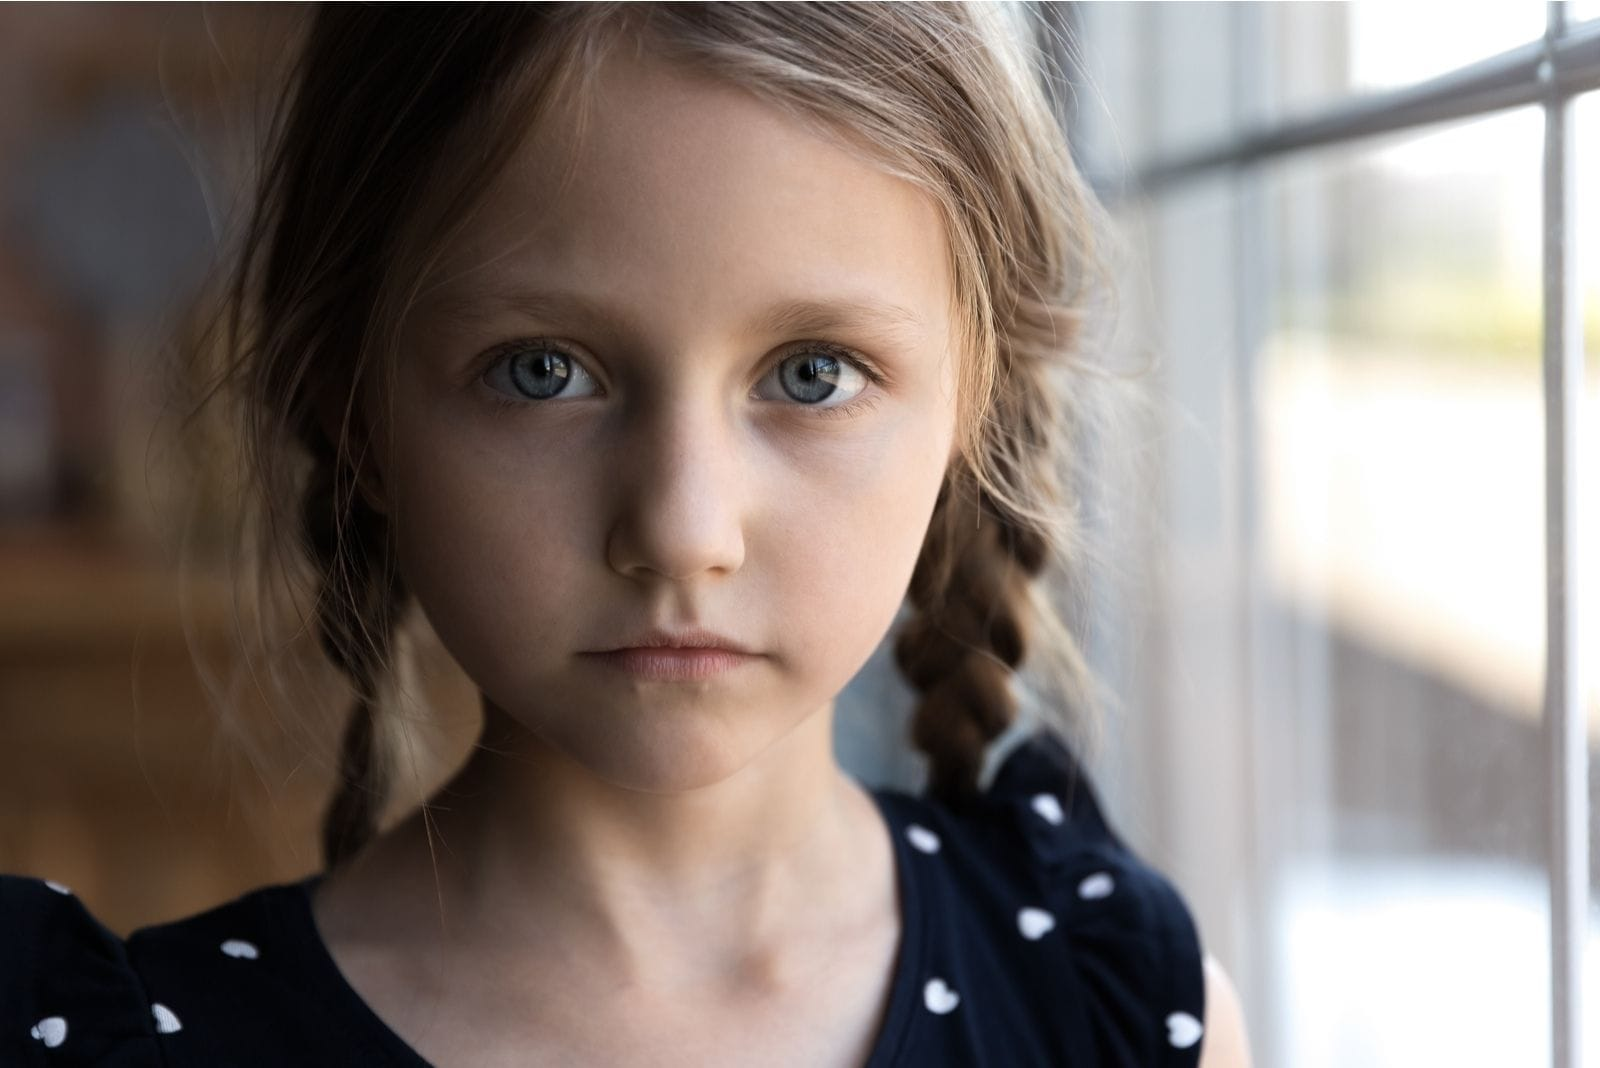 cropped image of a sad child looking at the camera standing beside the windows